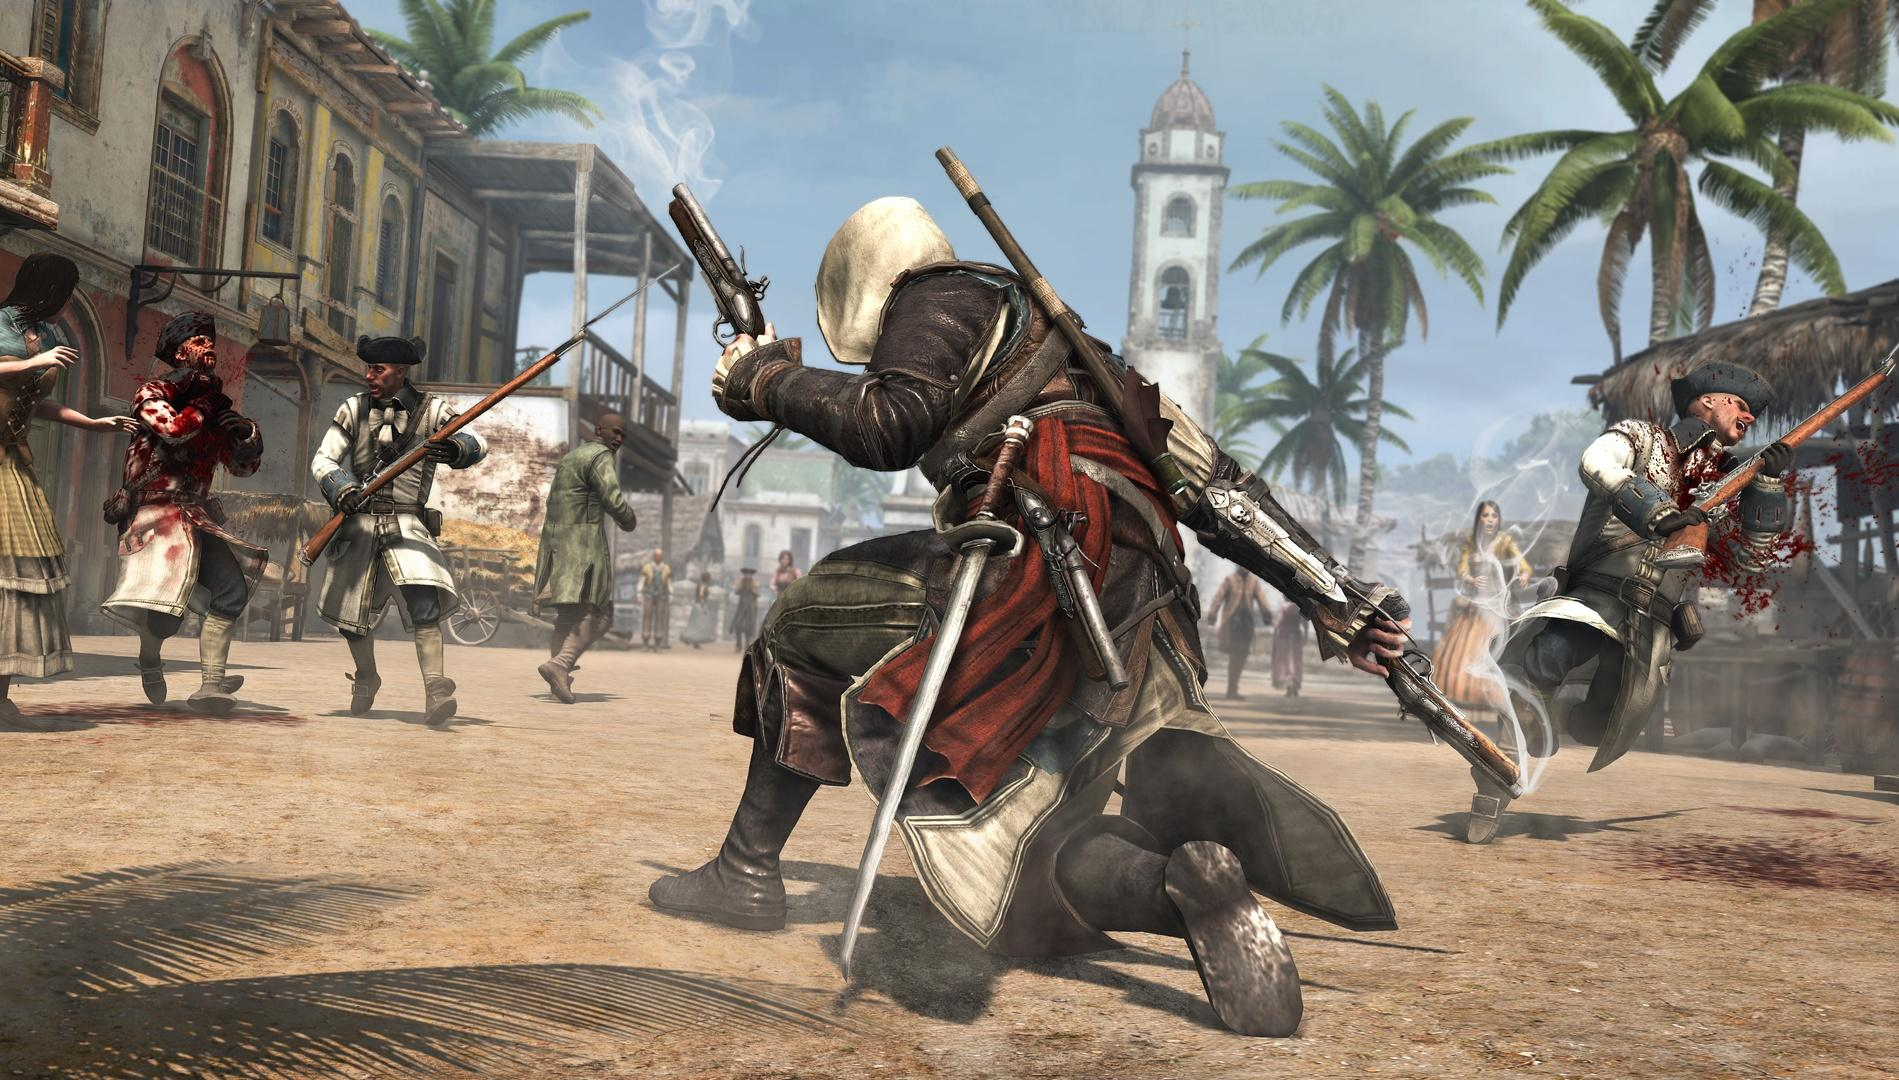 Assassin s creed iv download image assassins creed games free online